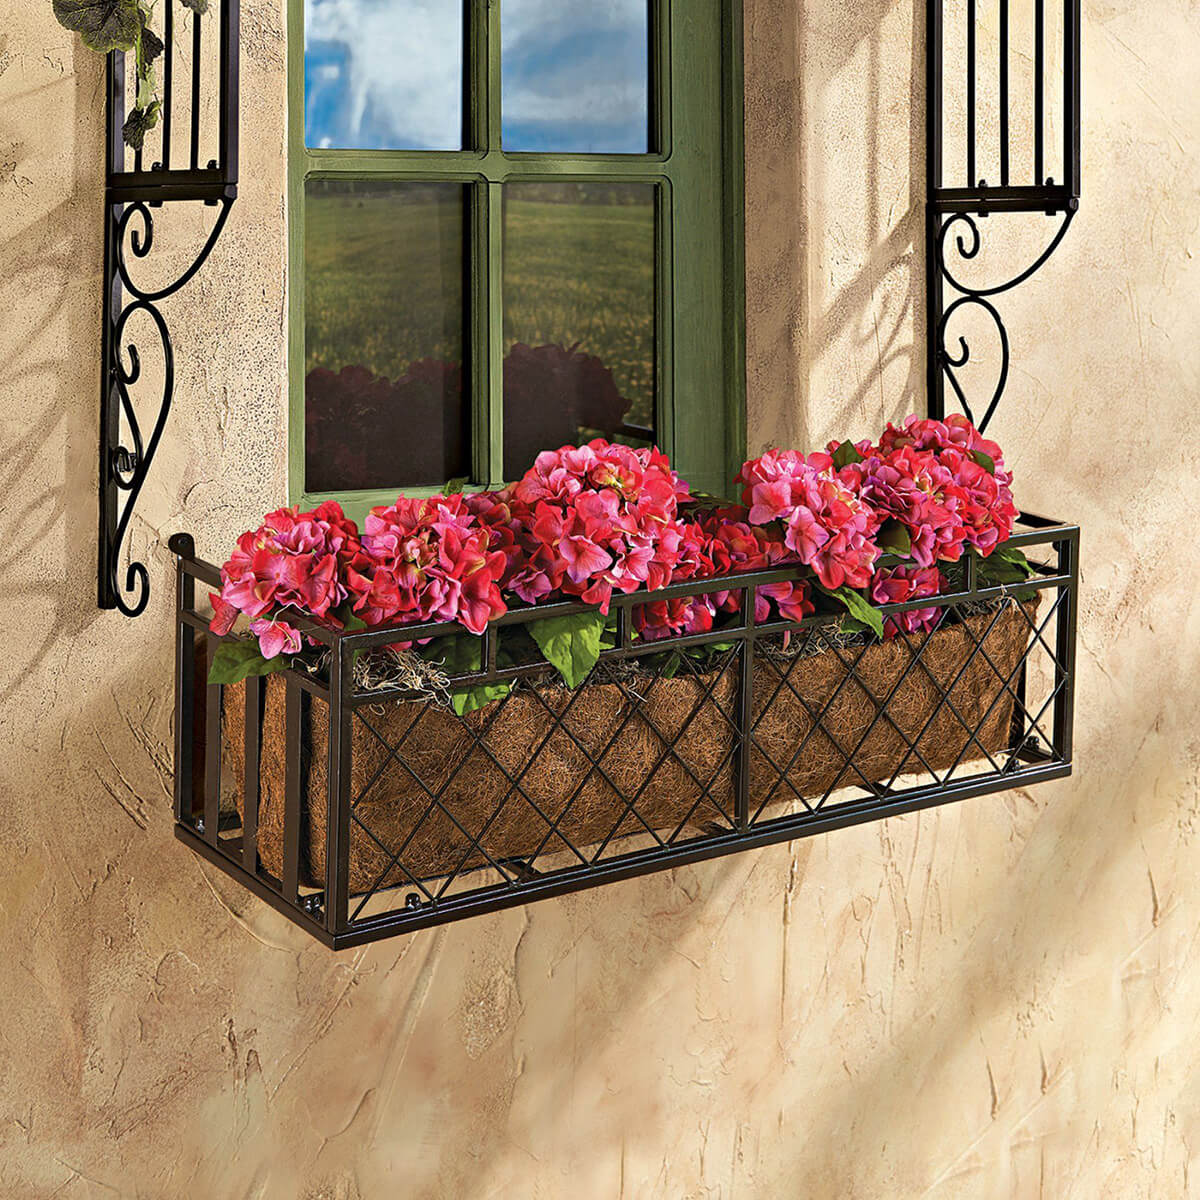 Black Metal Criss-cross Design Window Box